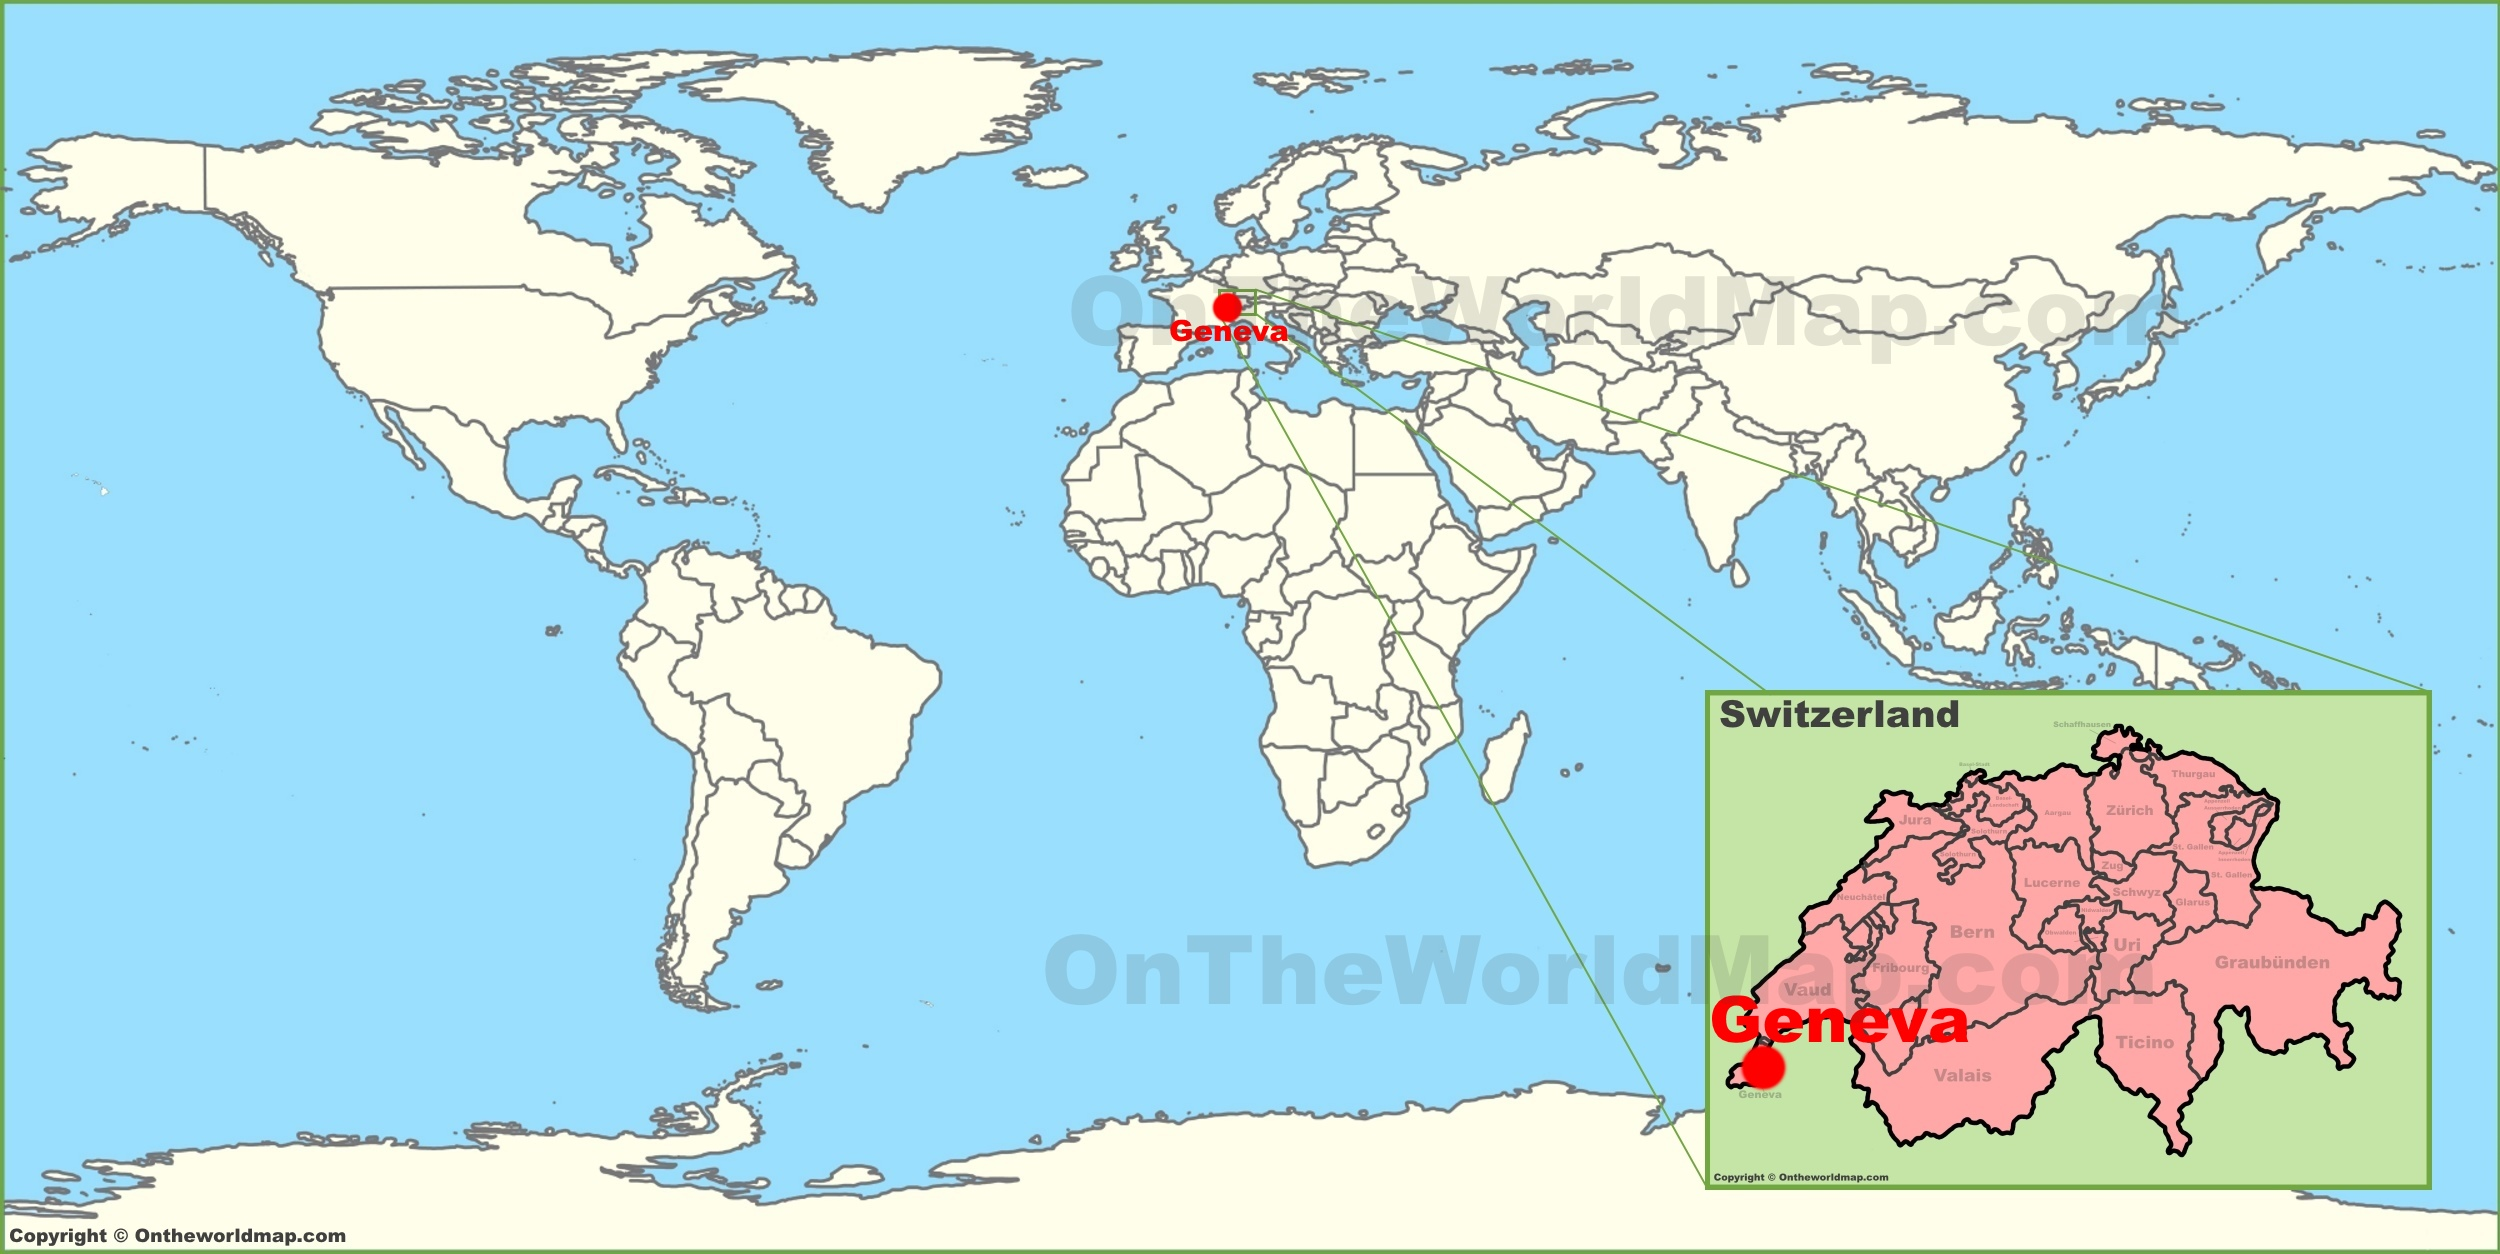 Where Is Switzerland On The Map Geneva on the World Map